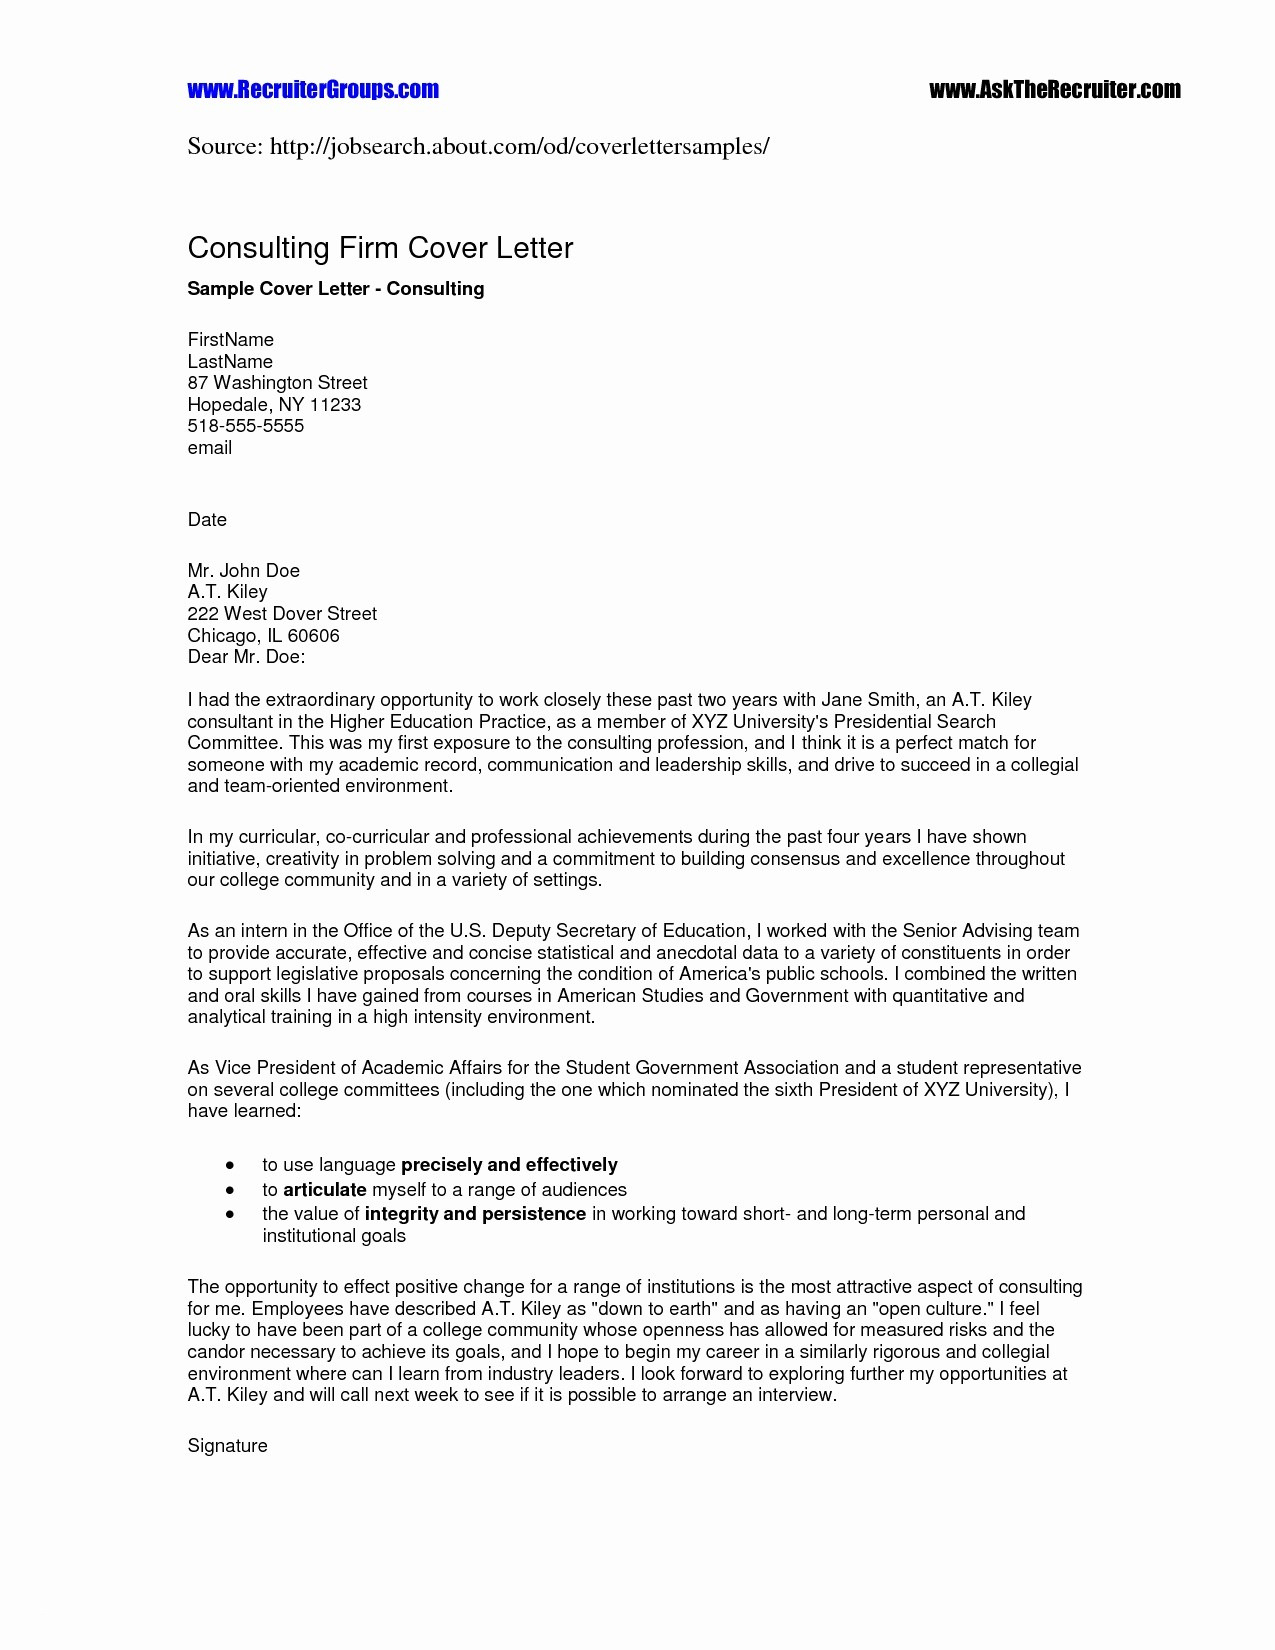 Cover Letter Template for Teaching assistant - Resume Teaching assistant Inspirational Teacher Cover Letter